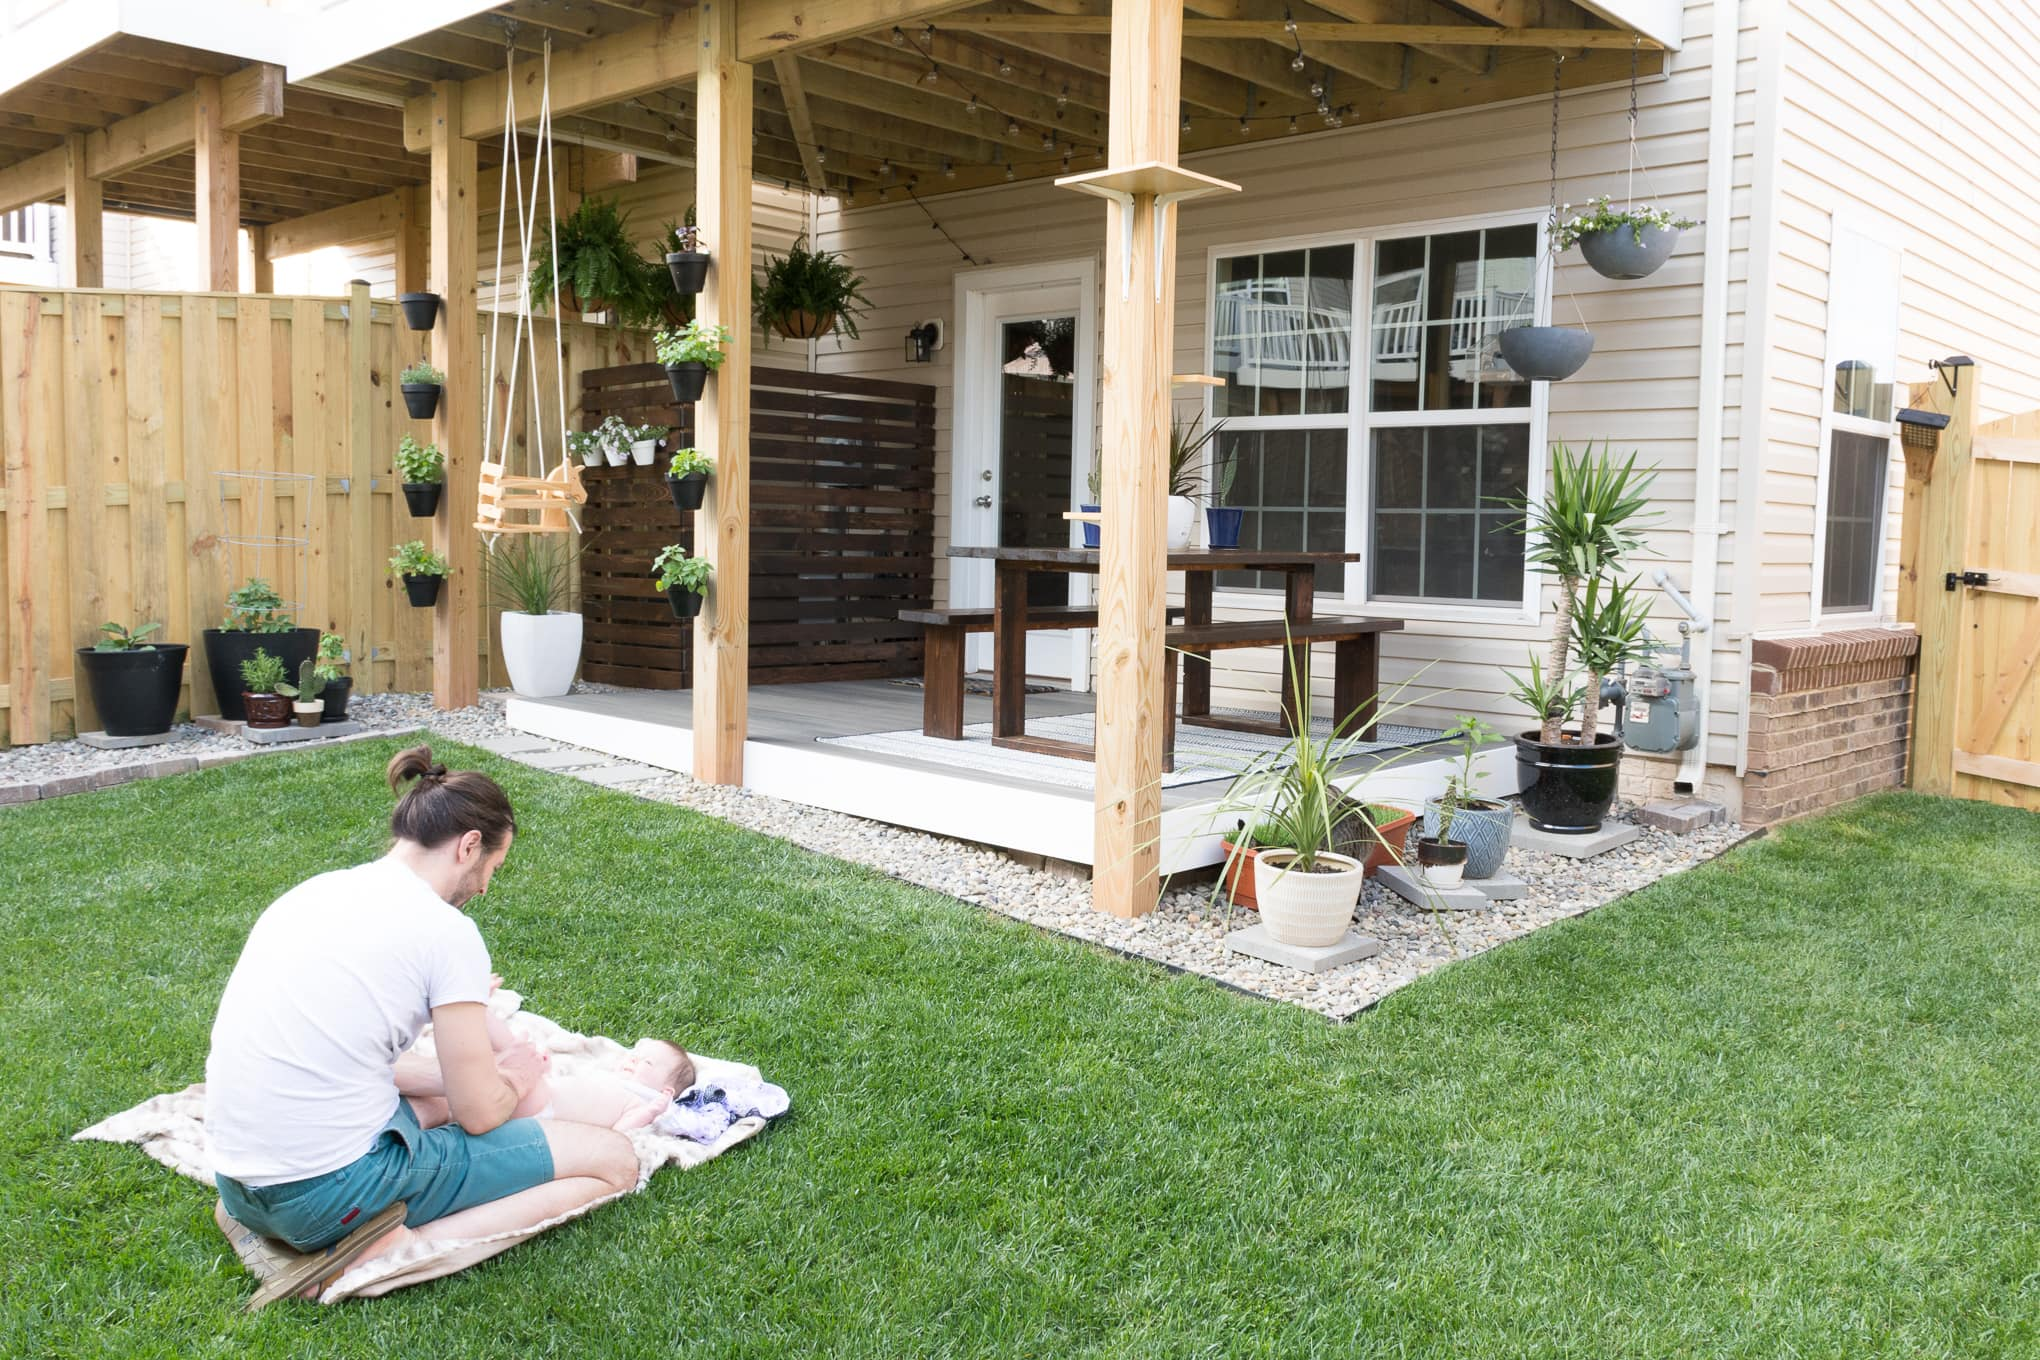 Modern design ideas for a small backyard